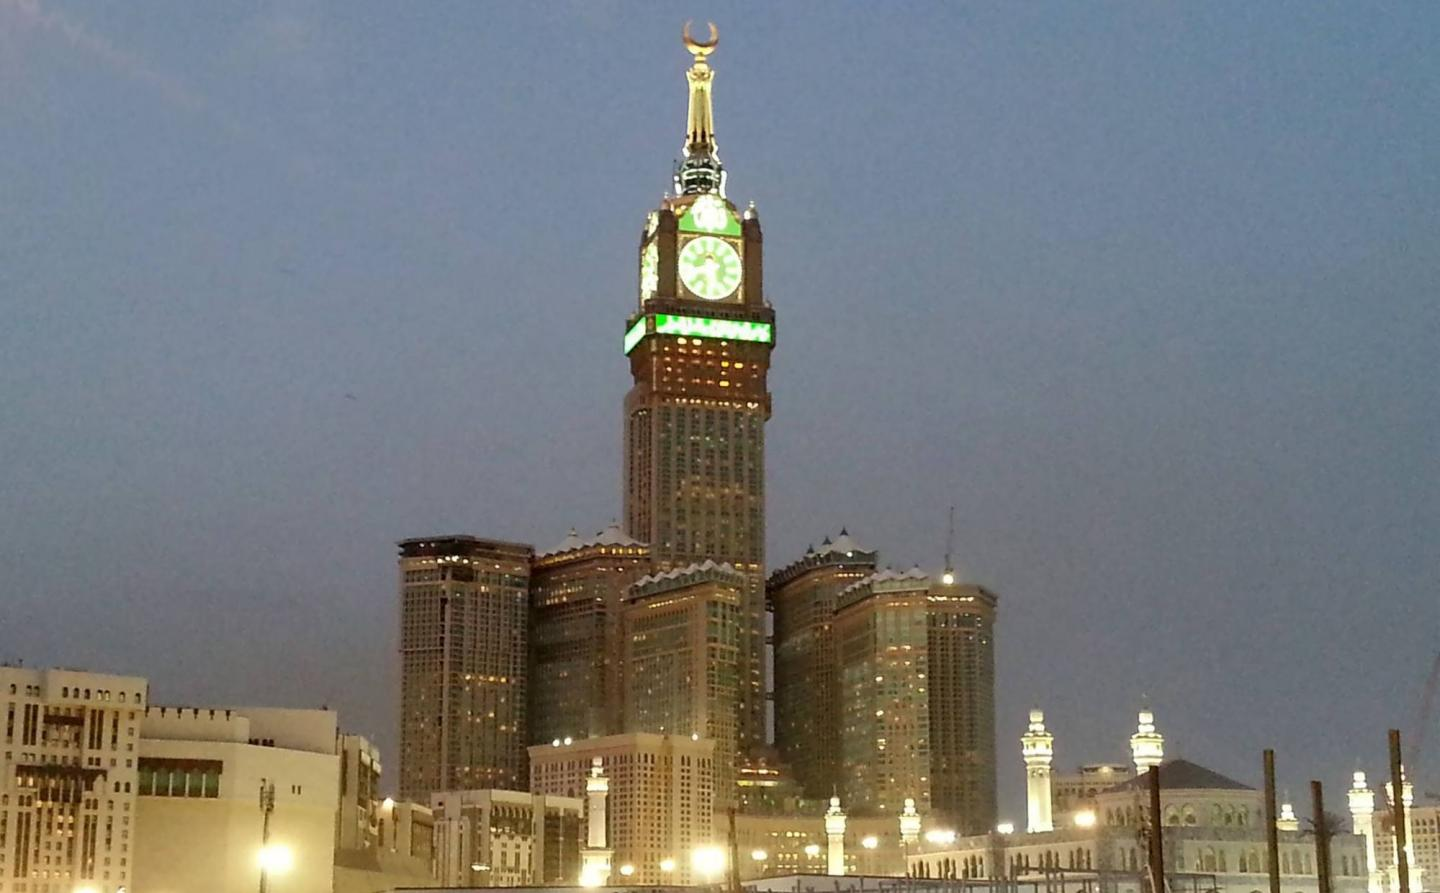 Makkah Royal Clock Tower Hotel The Abraj Al Bait Towers